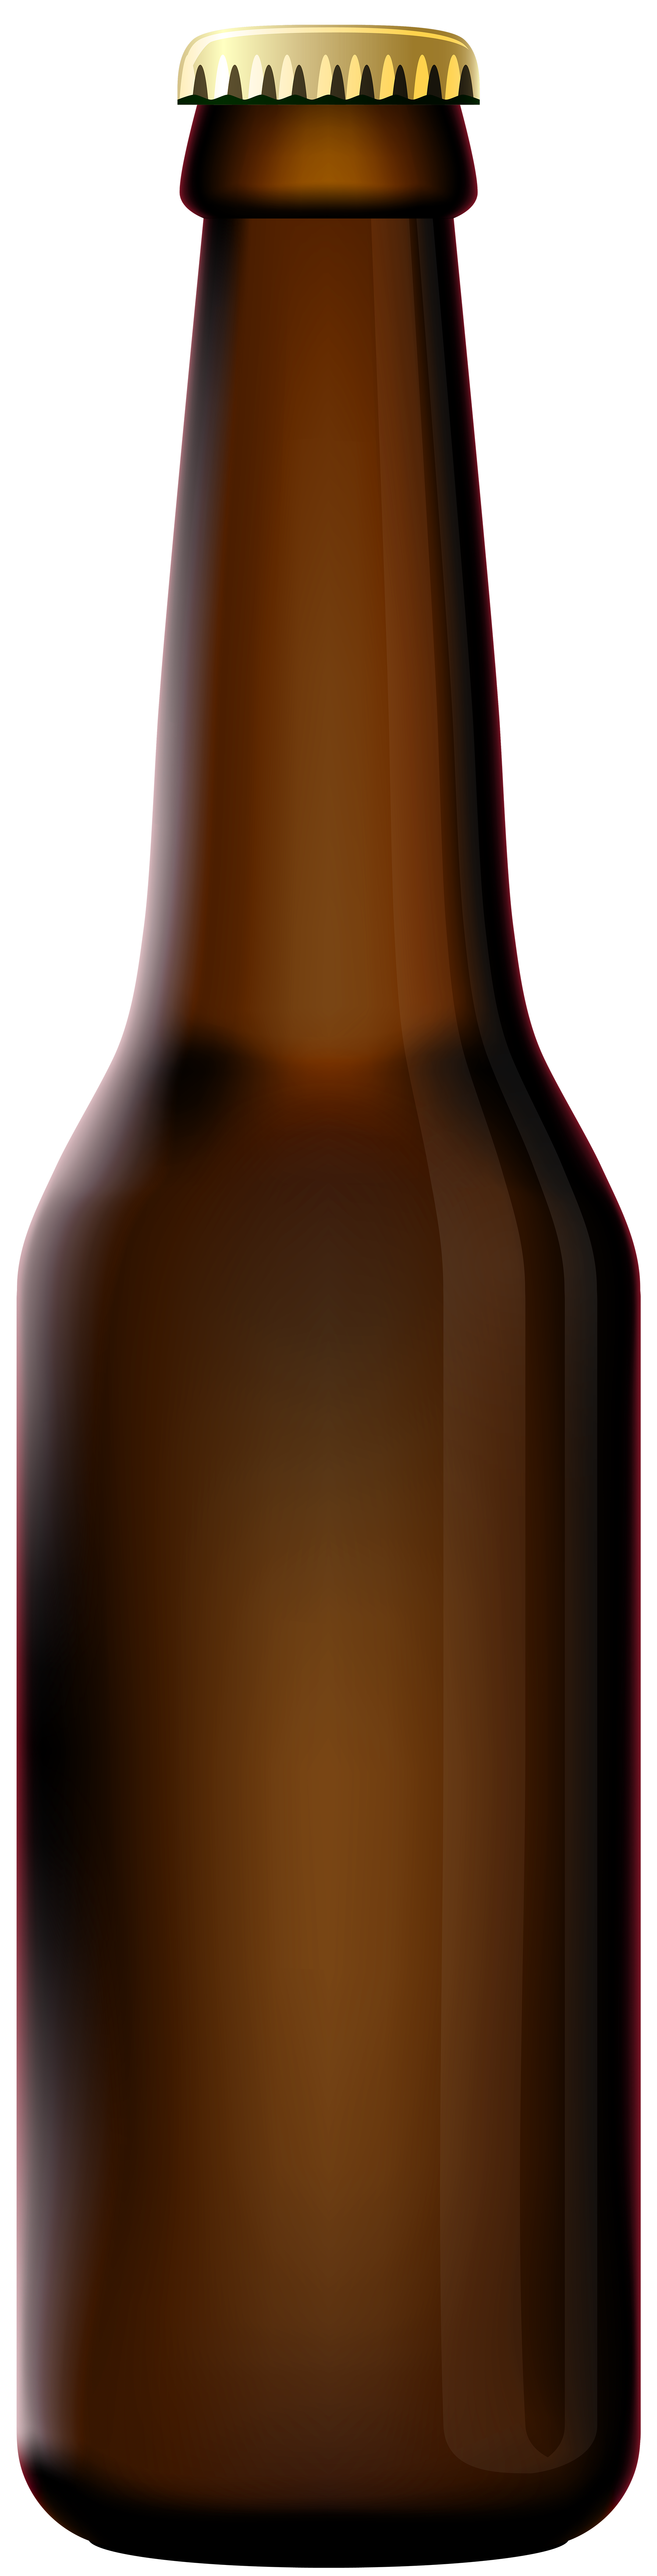 Blank beer bottle png. Clip art gallery yopriceville